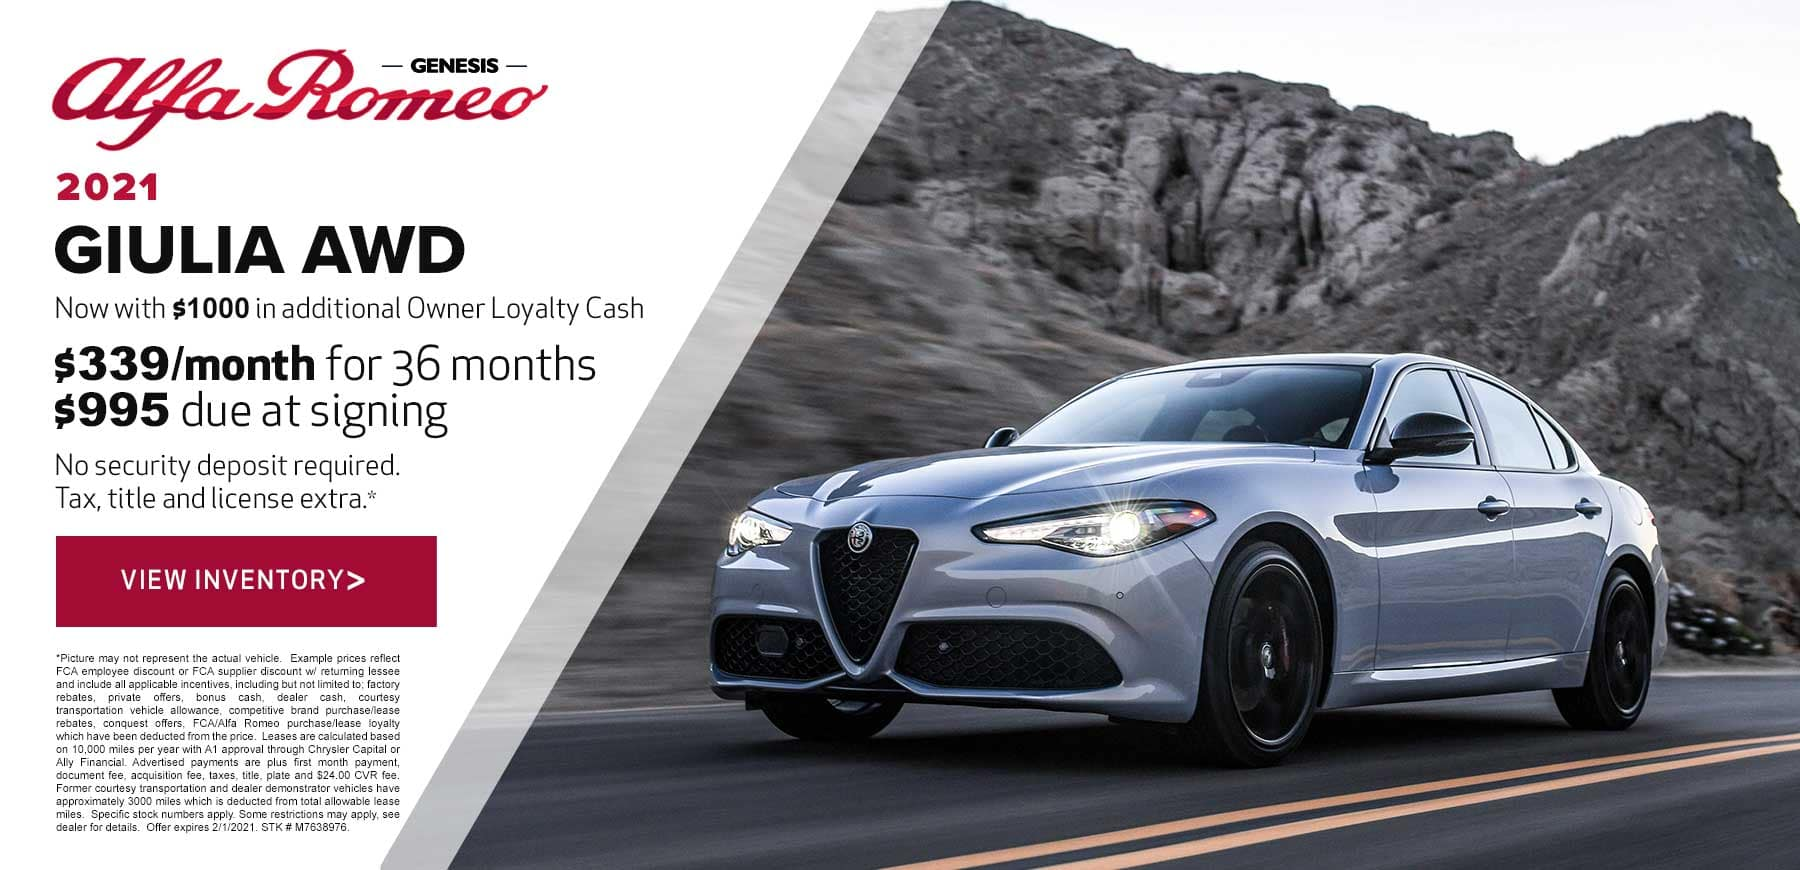 Genesis Alfa Romeo January 2021 Giulia Lease Offer